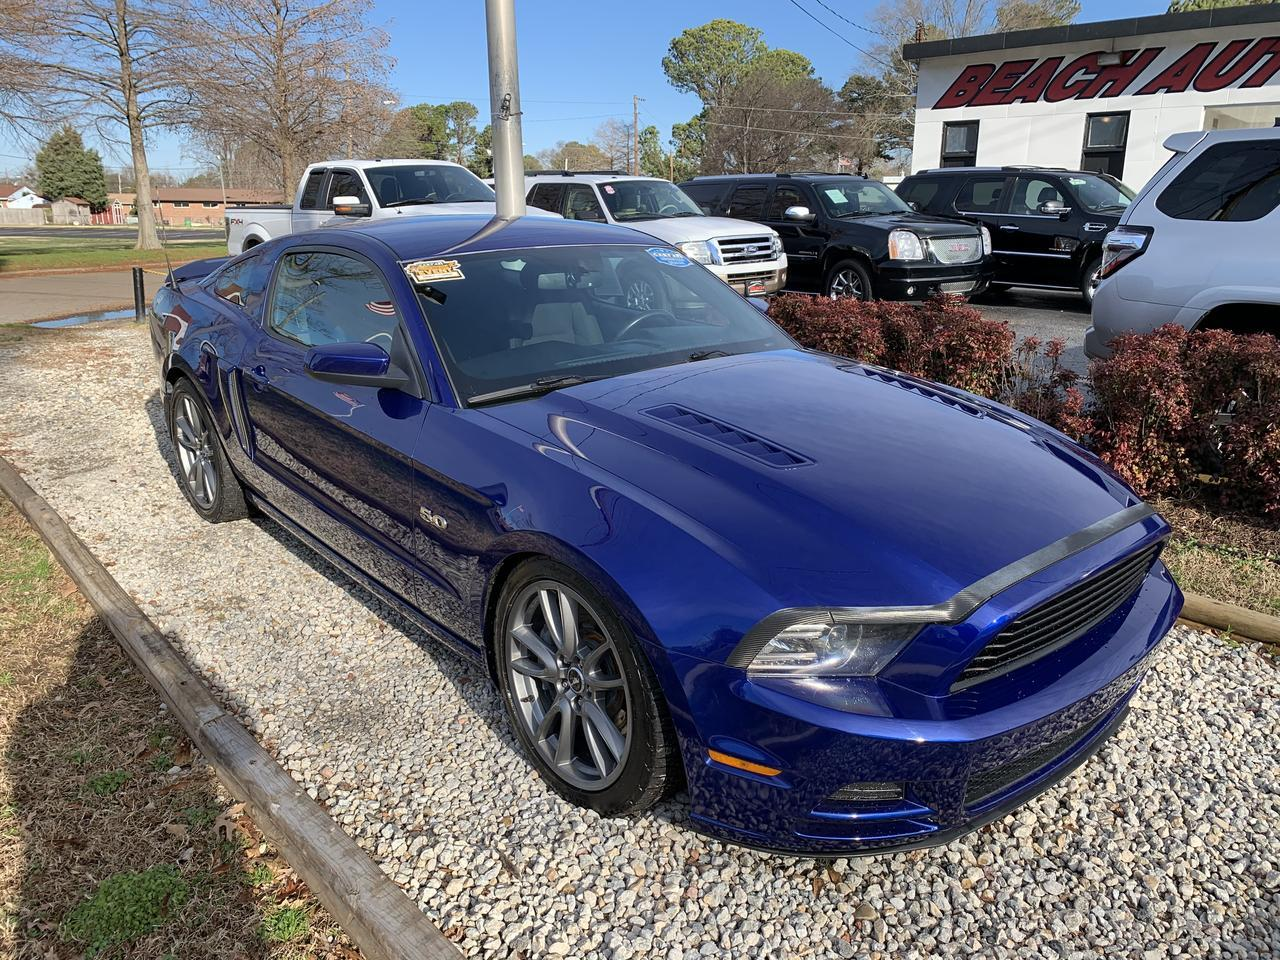 2014 FORD MUSTANG GT COUPE, WARRANTY, MANUAL, SYNC, A/C, REAR SPOILER, SIRIUS RADIO, LOW MILES! Norfolk VA